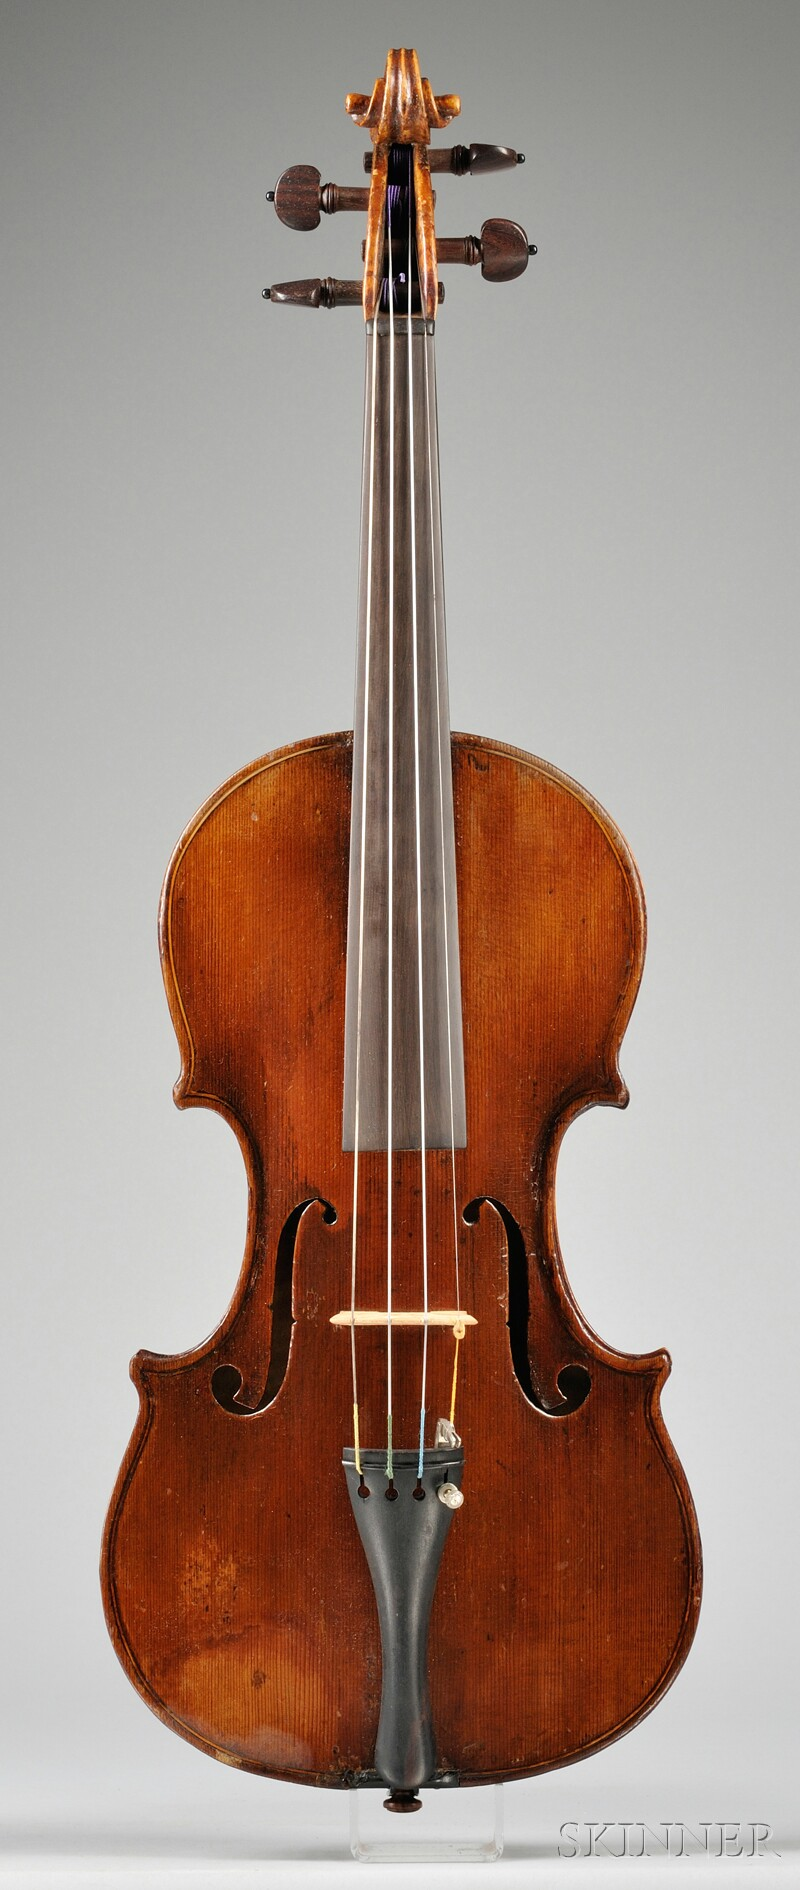 Violin, c. 1850, After Giuseppe Guadagnini